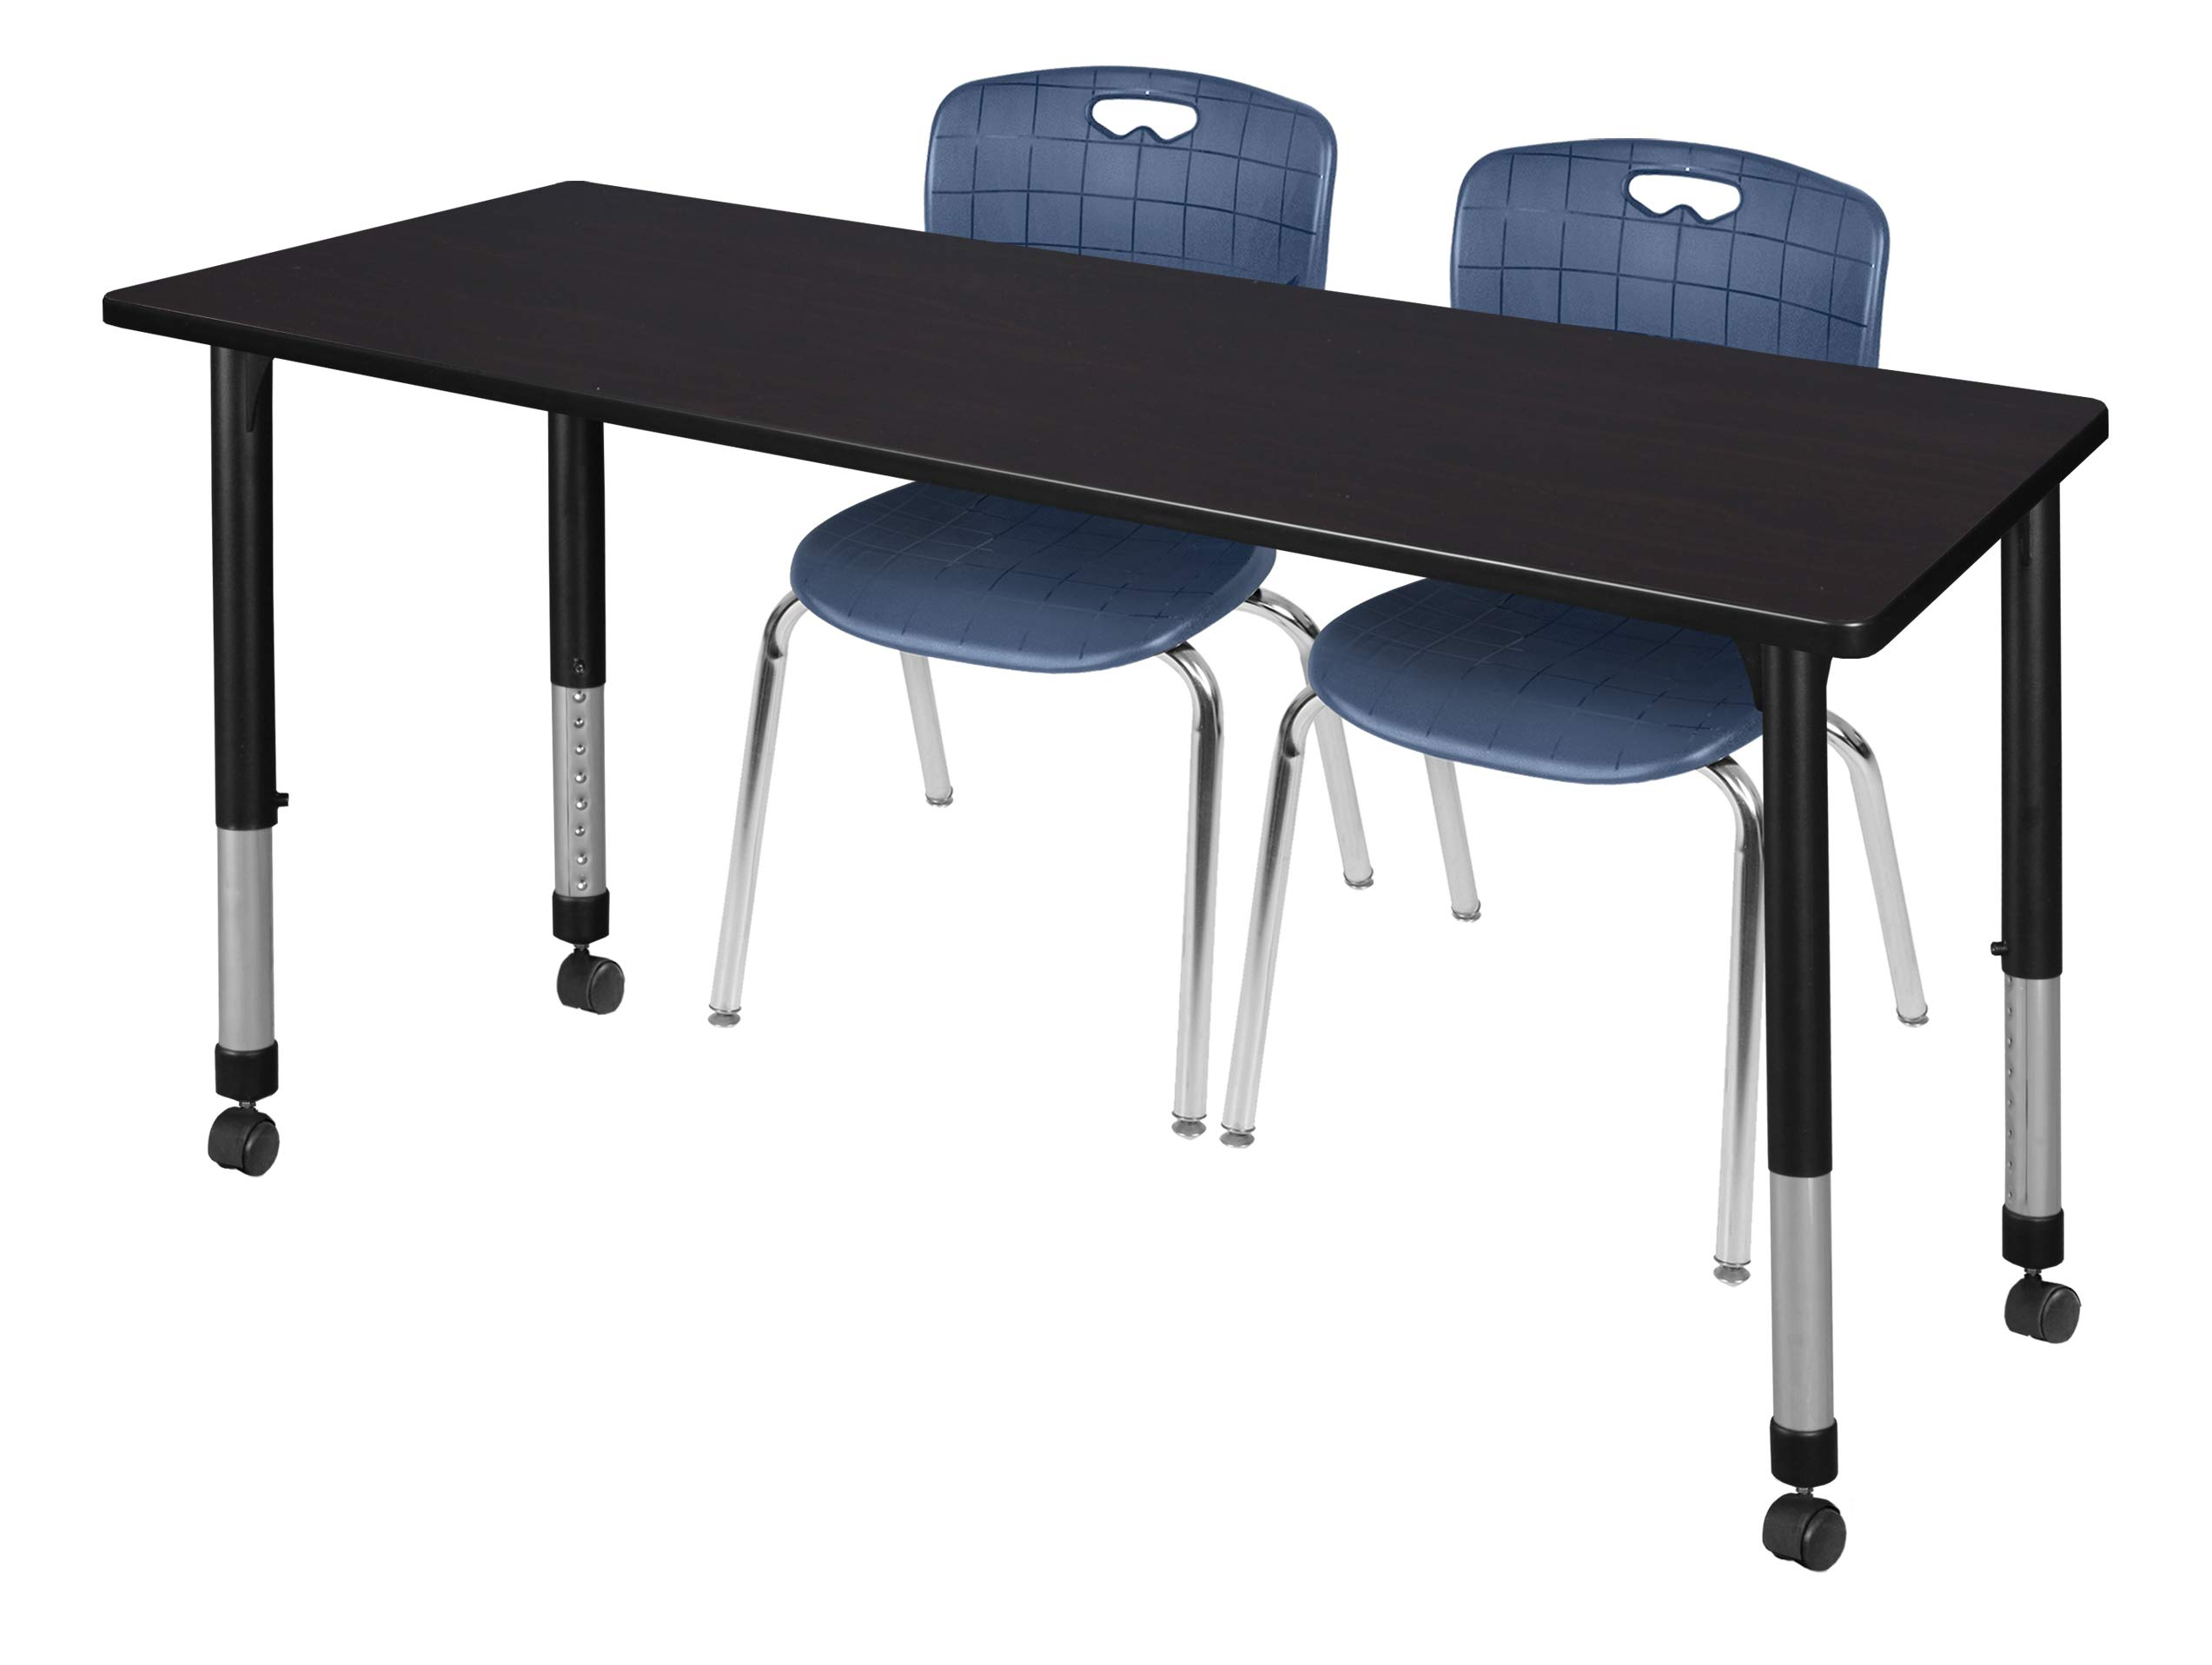 Regency MT7230MWAPCBK40NV Kee Height Adjustable Mobile Classroom Table Set with Two 18'' Andy Chairs 72'' x 30'' Mocha Walnut/Navy Blue